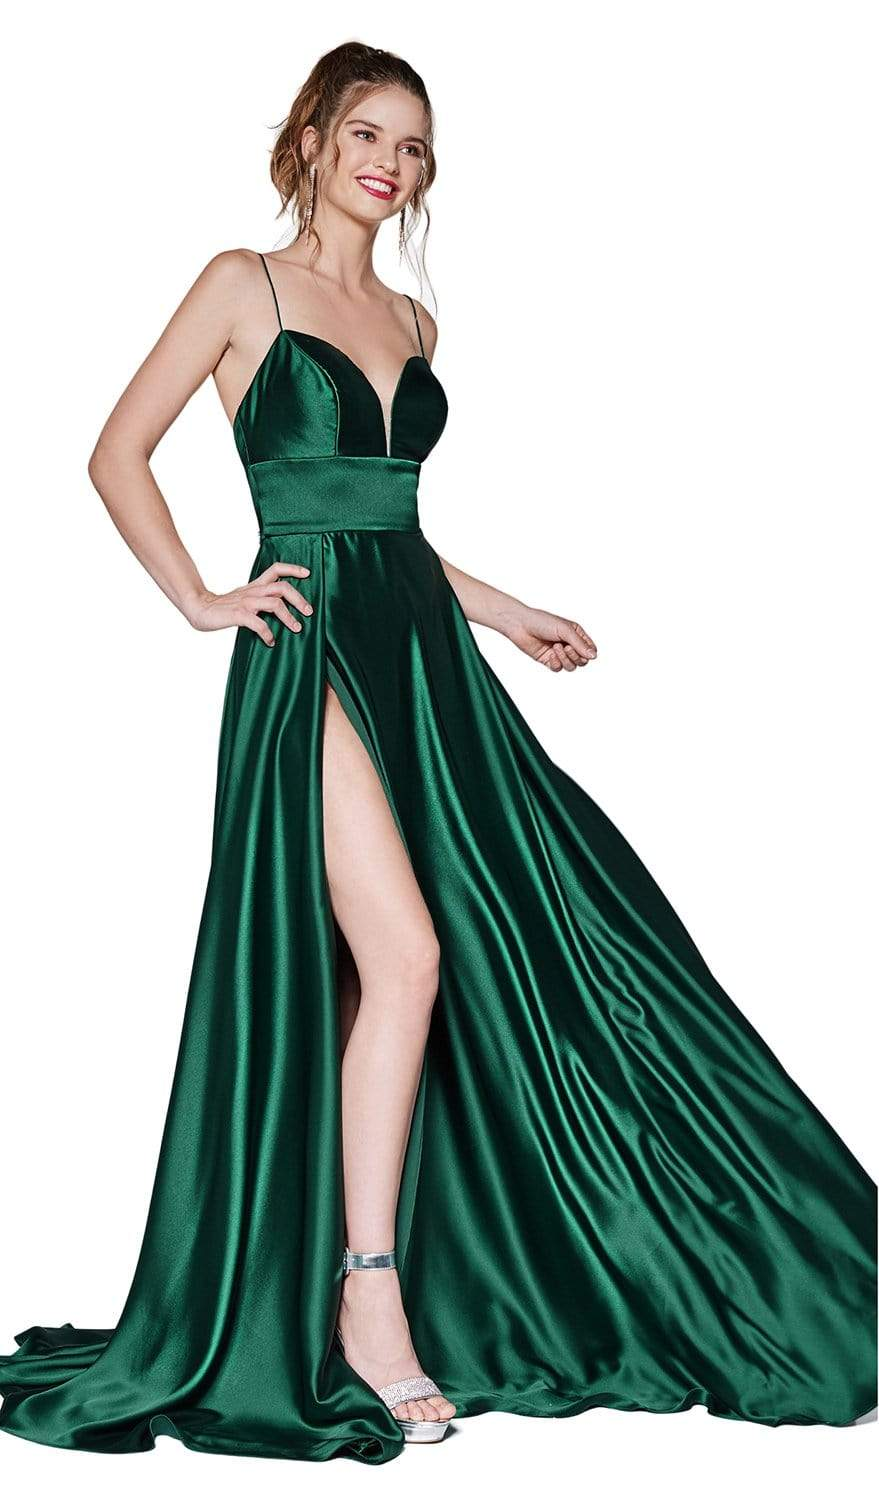 Cinderella Divine - CJ523 Sweetheart Neckline High Slit Satin Gown Prom Dresses 4 / Emerald